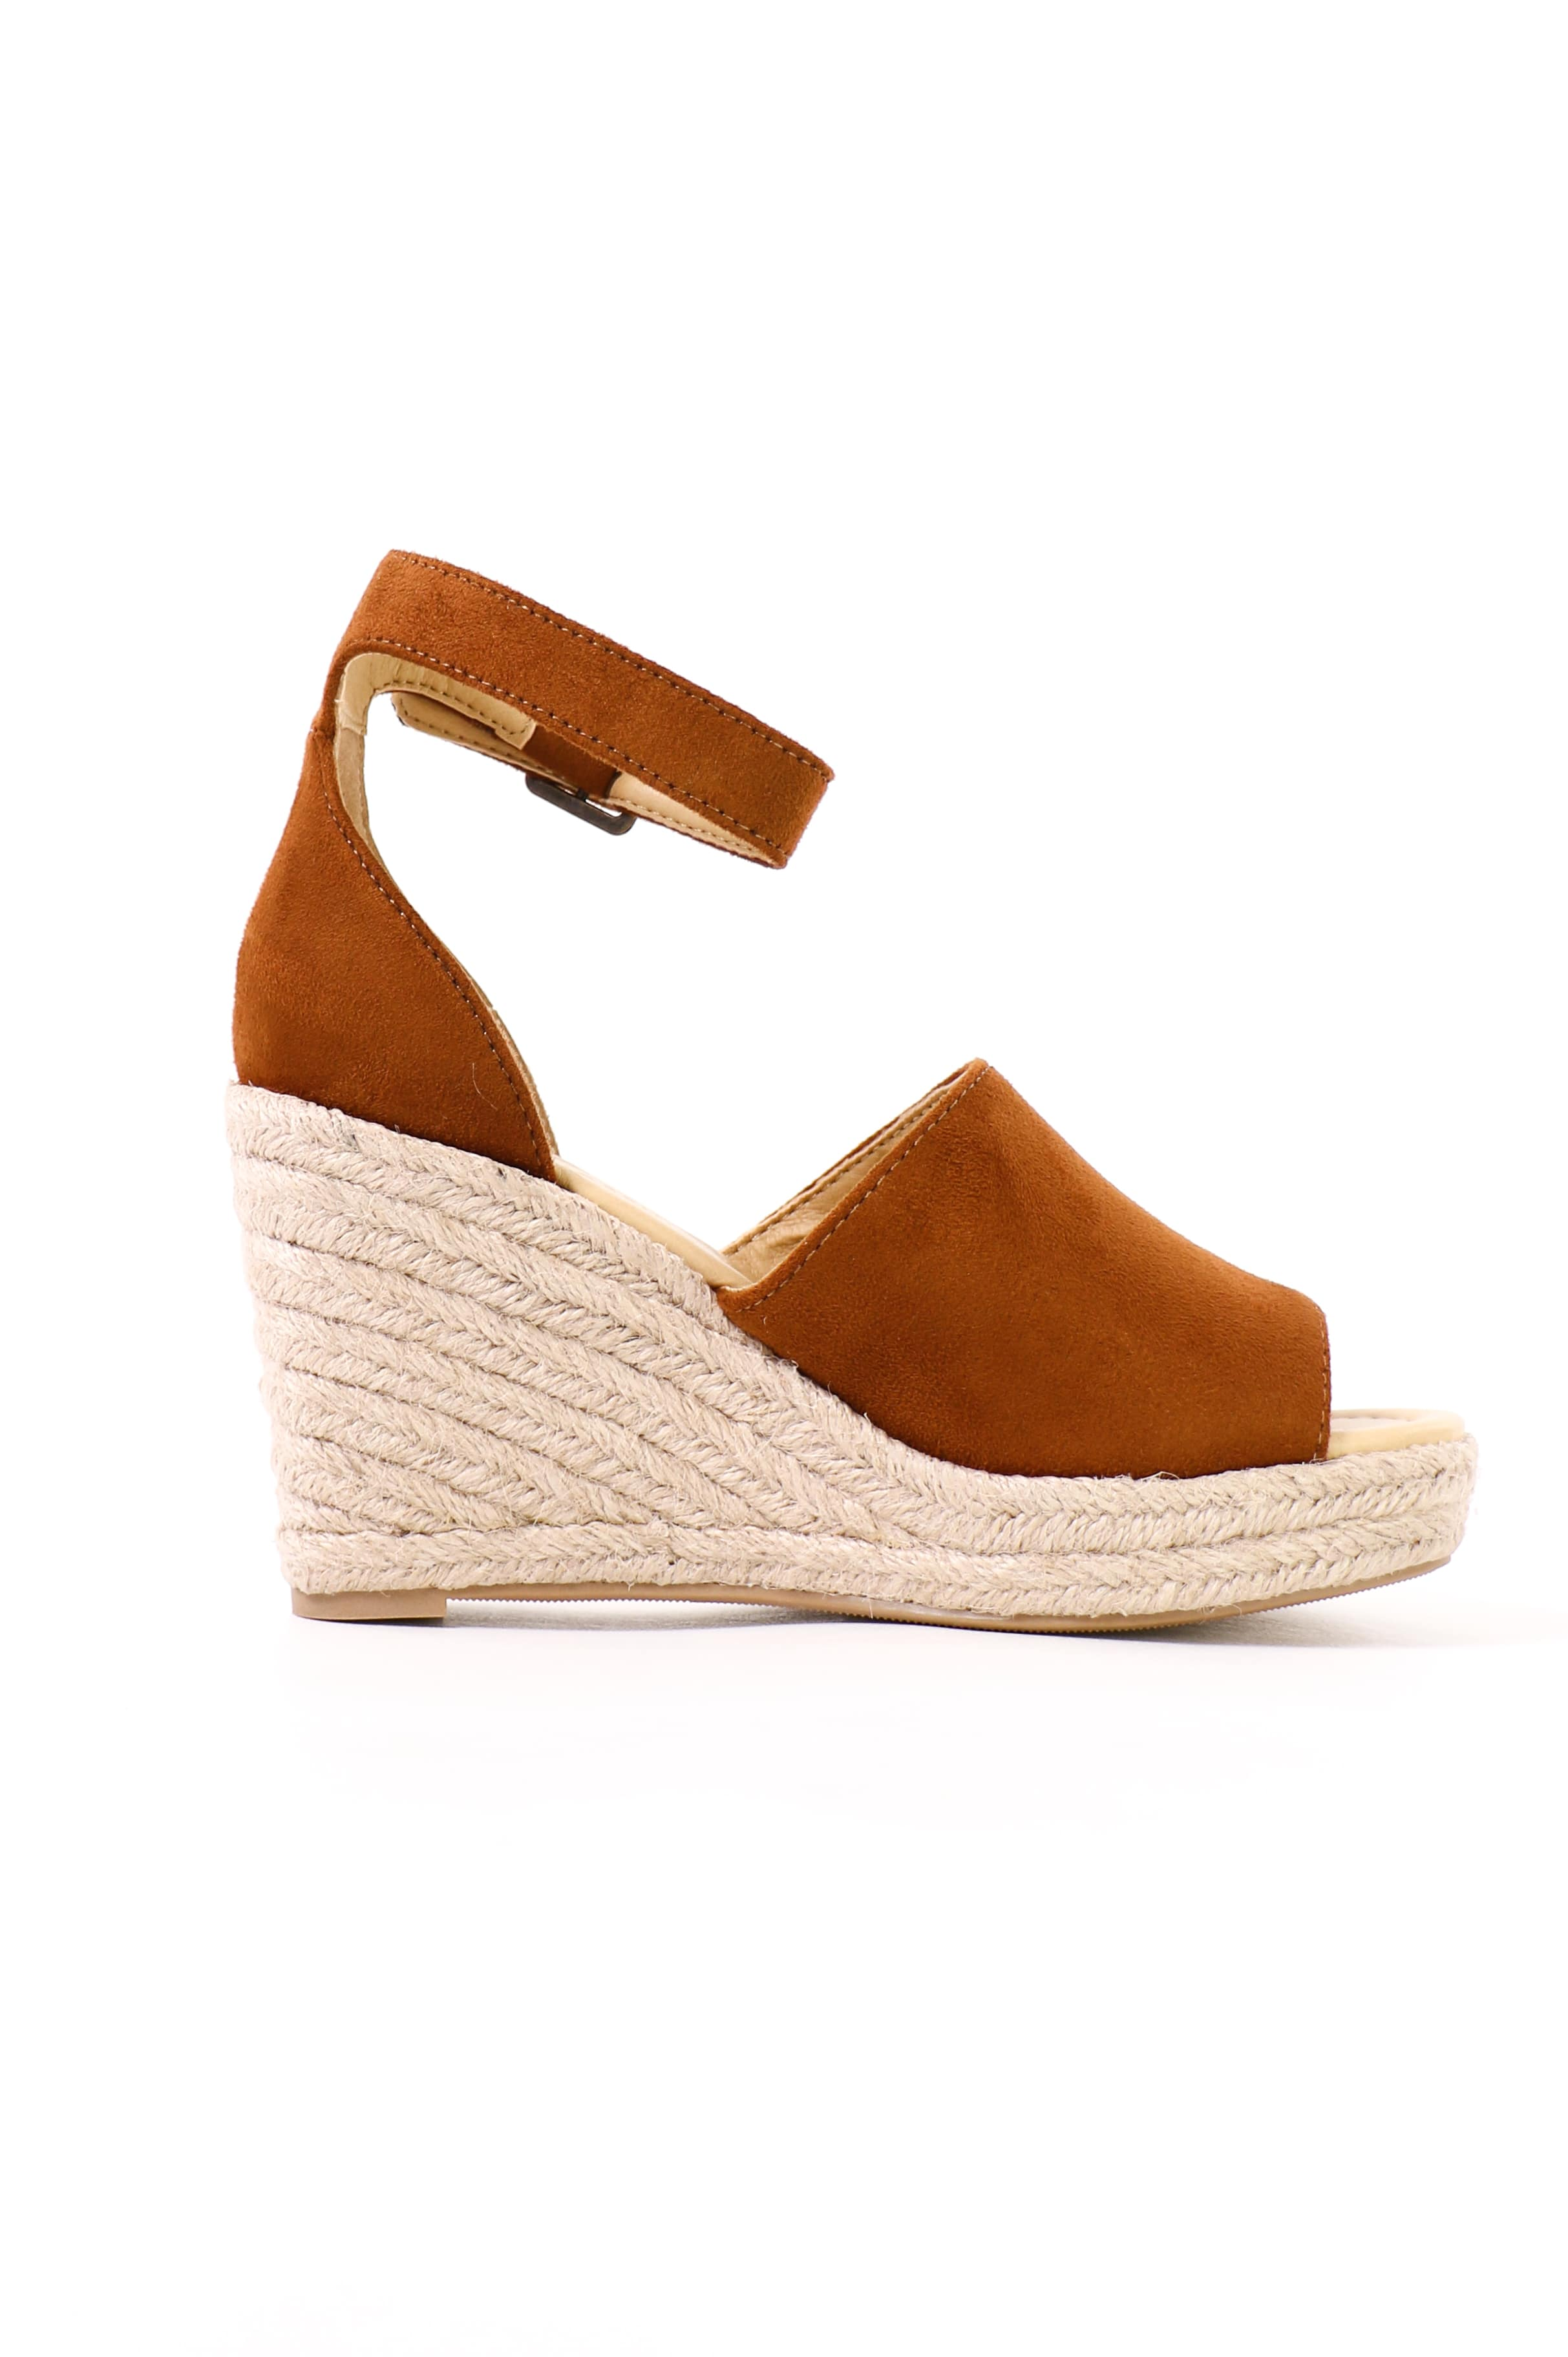 side of the esparto rope wrapped sole on the this is not a espadrille sandal wedge - elle bleu shoes